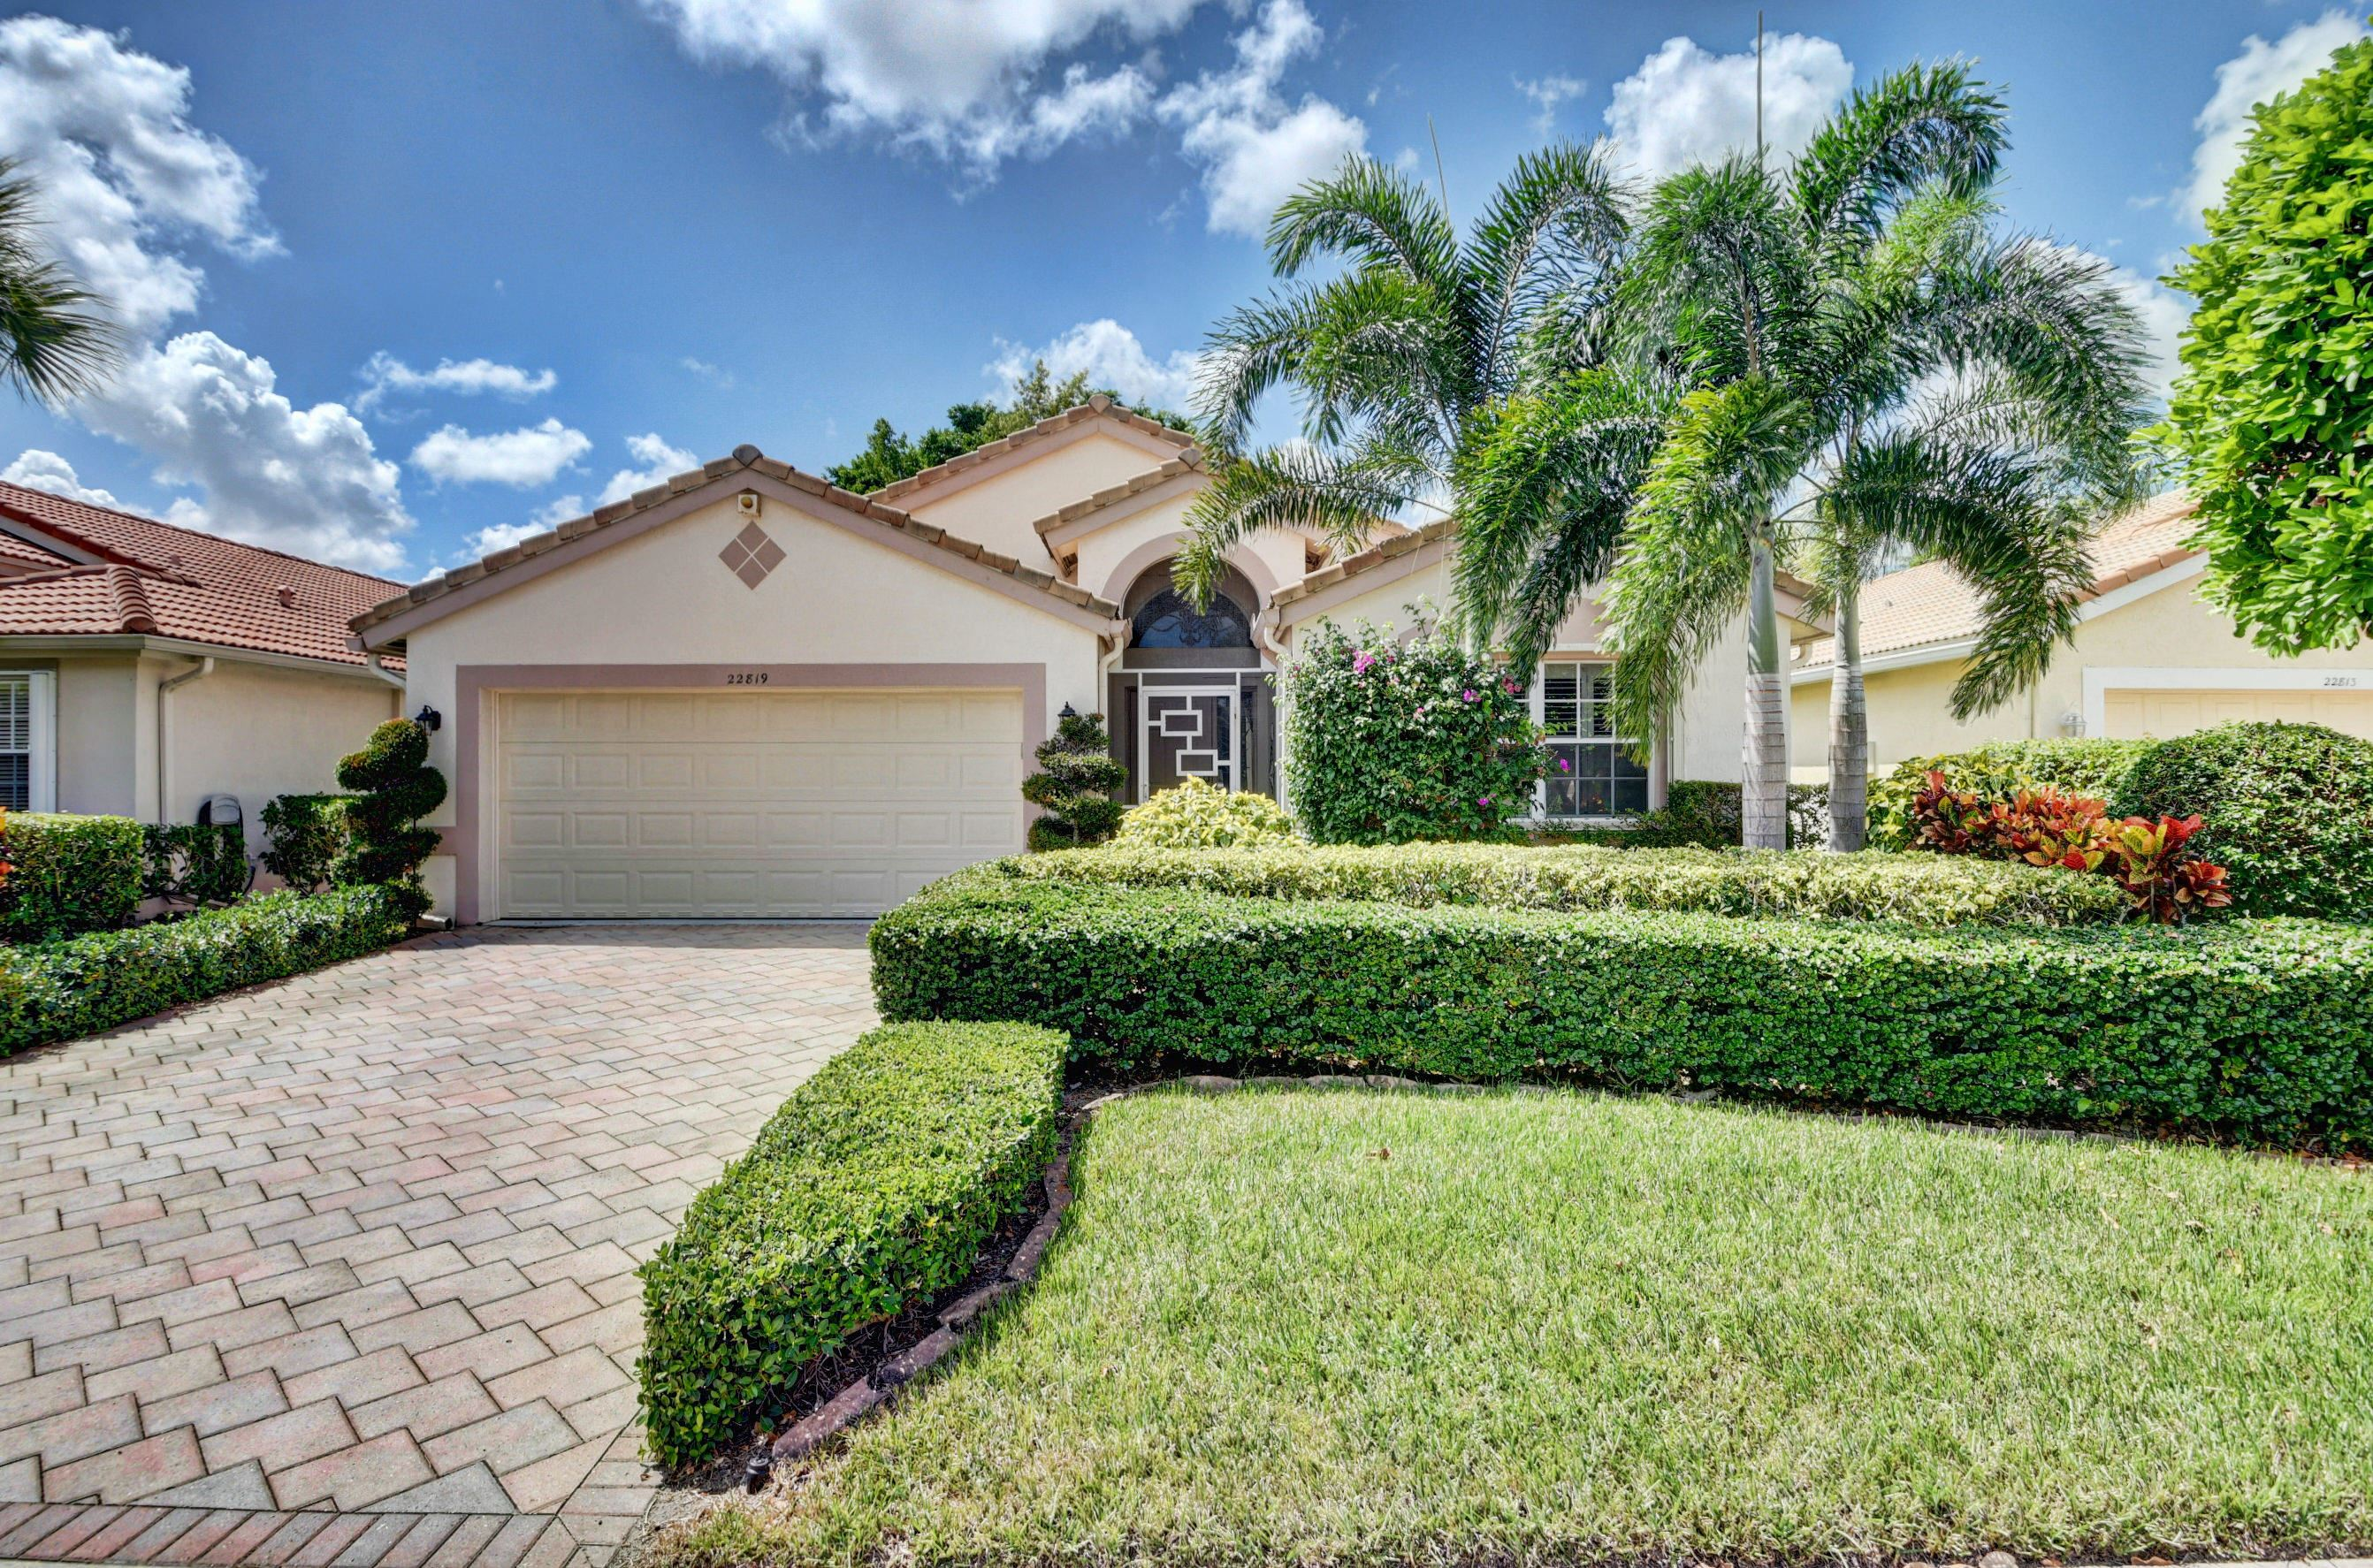 One of Boca Del Mar 3 Bedroom Homes for Sale at 22819 Royal Crown Terrace